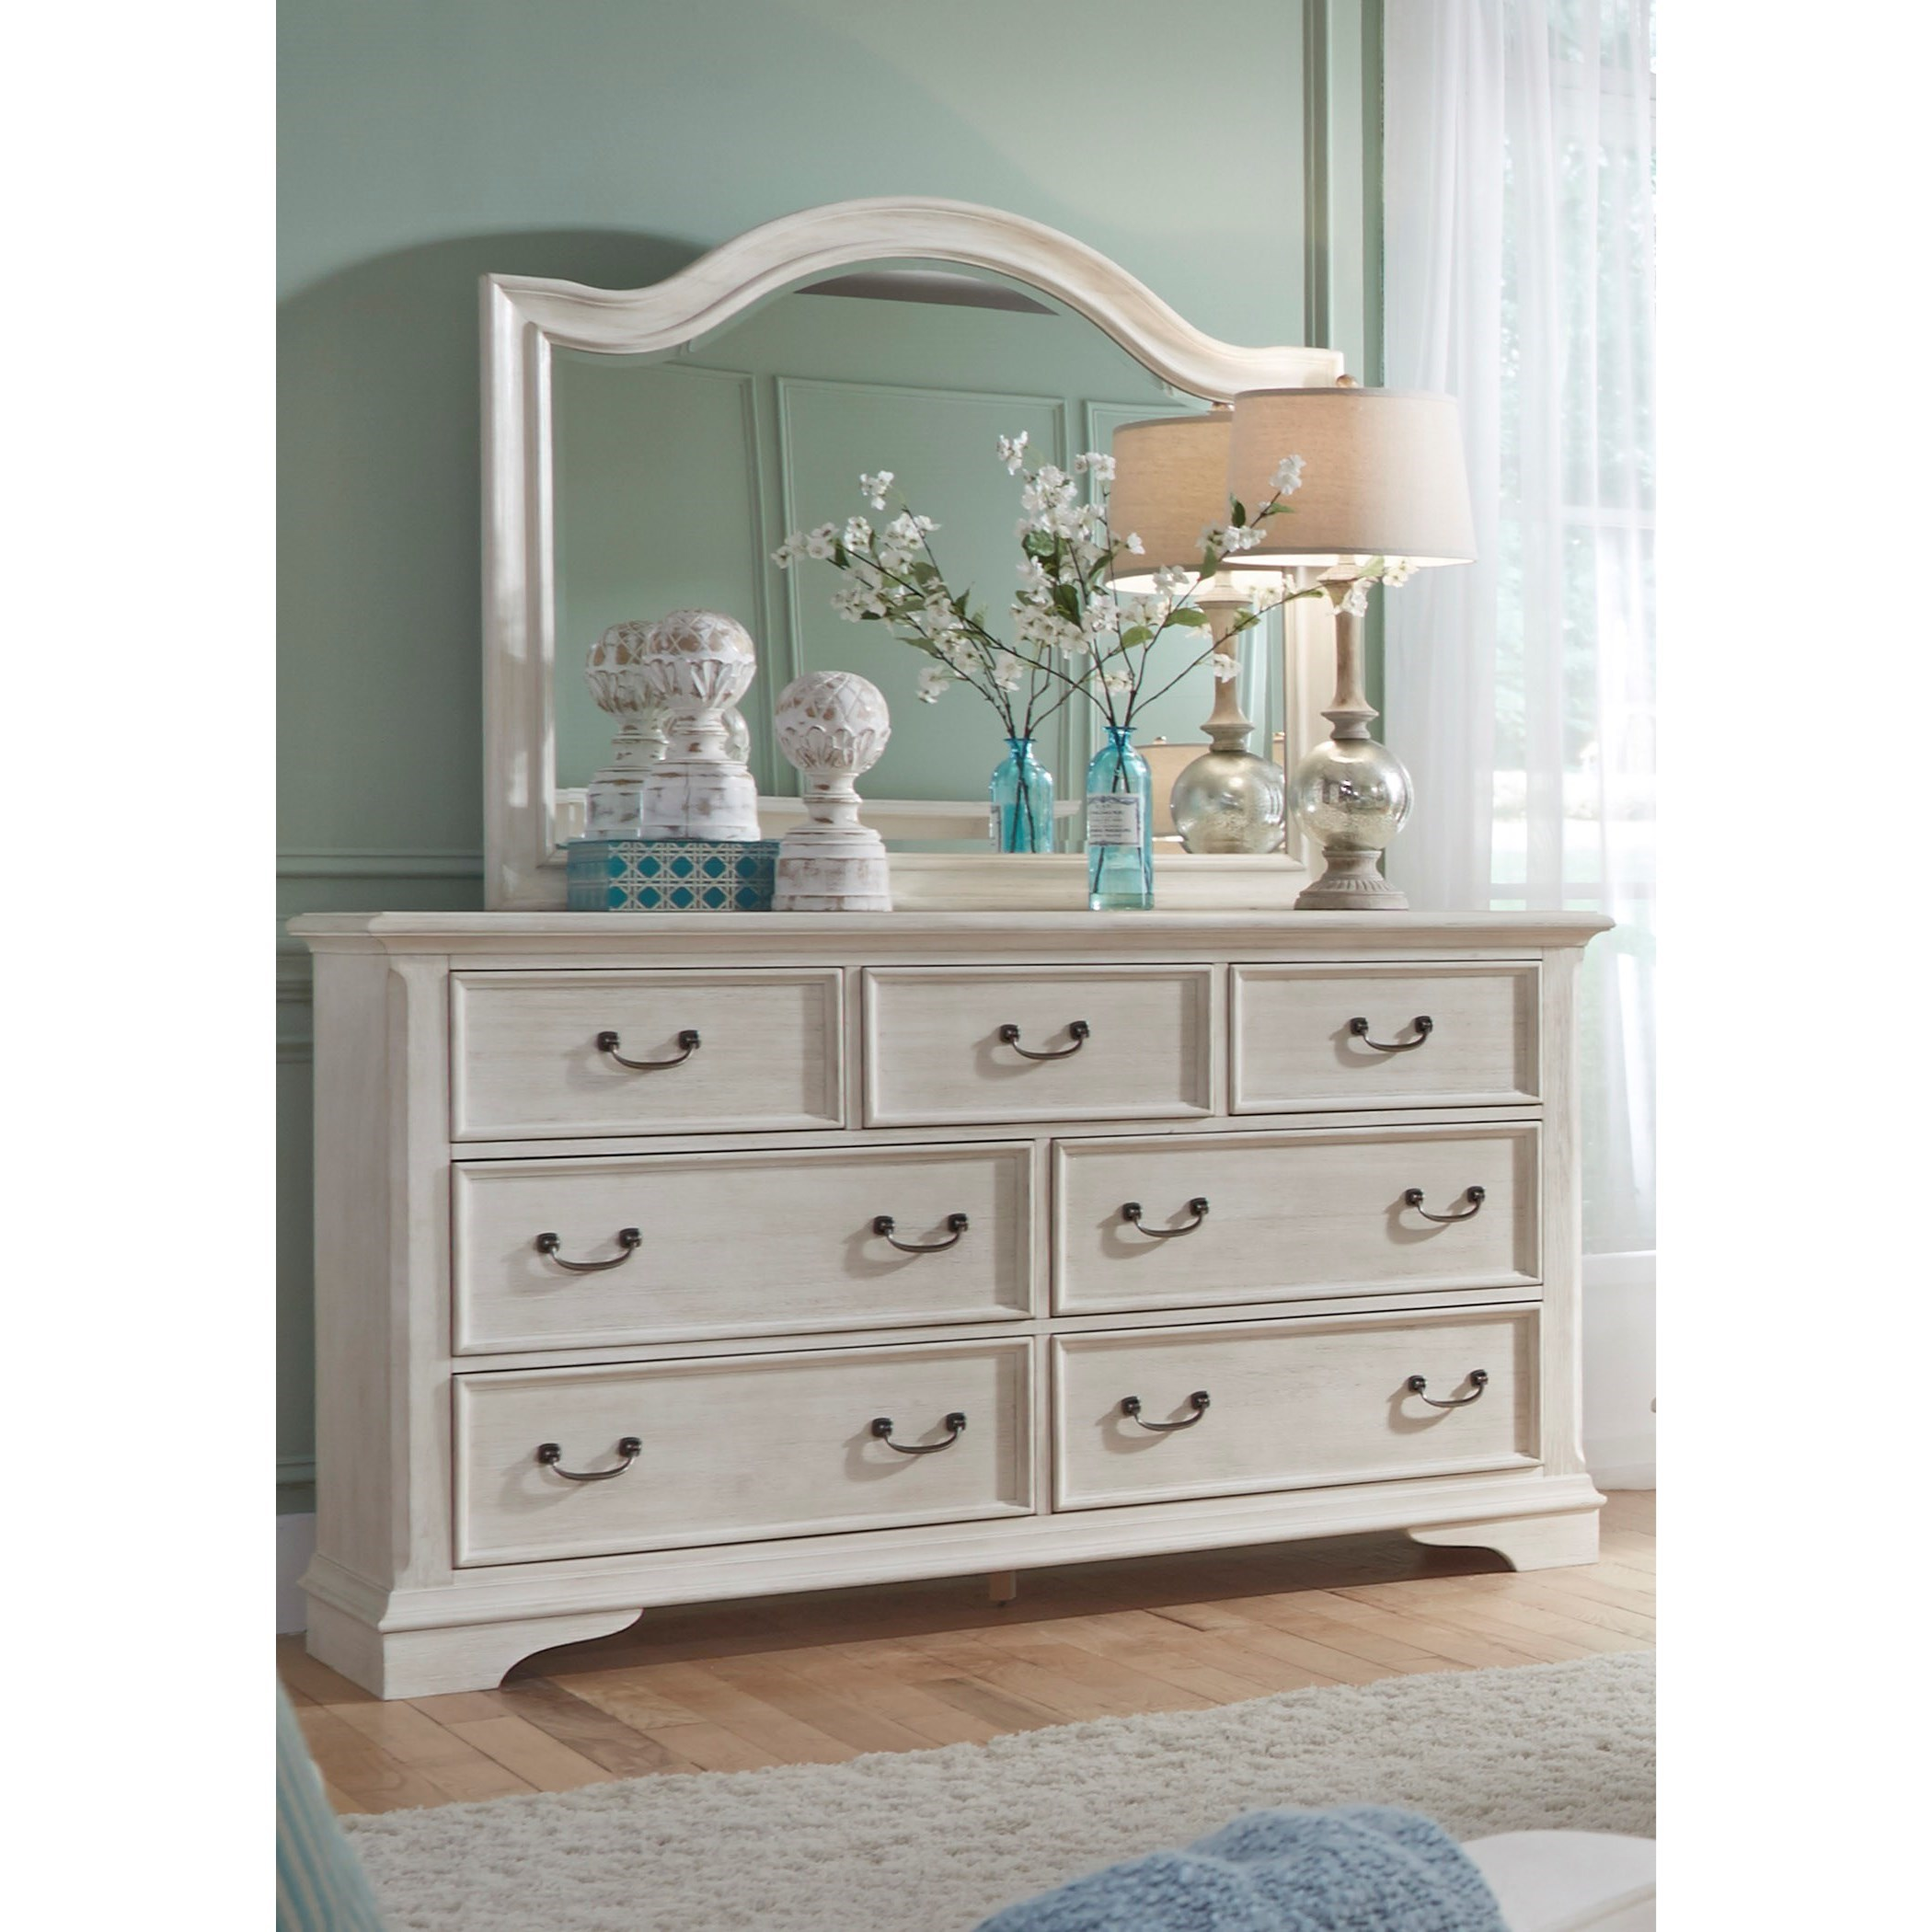 Bedroom Dressers With Mirrors: Liberty Furniture Bayside Bedroom Transitional Dresser